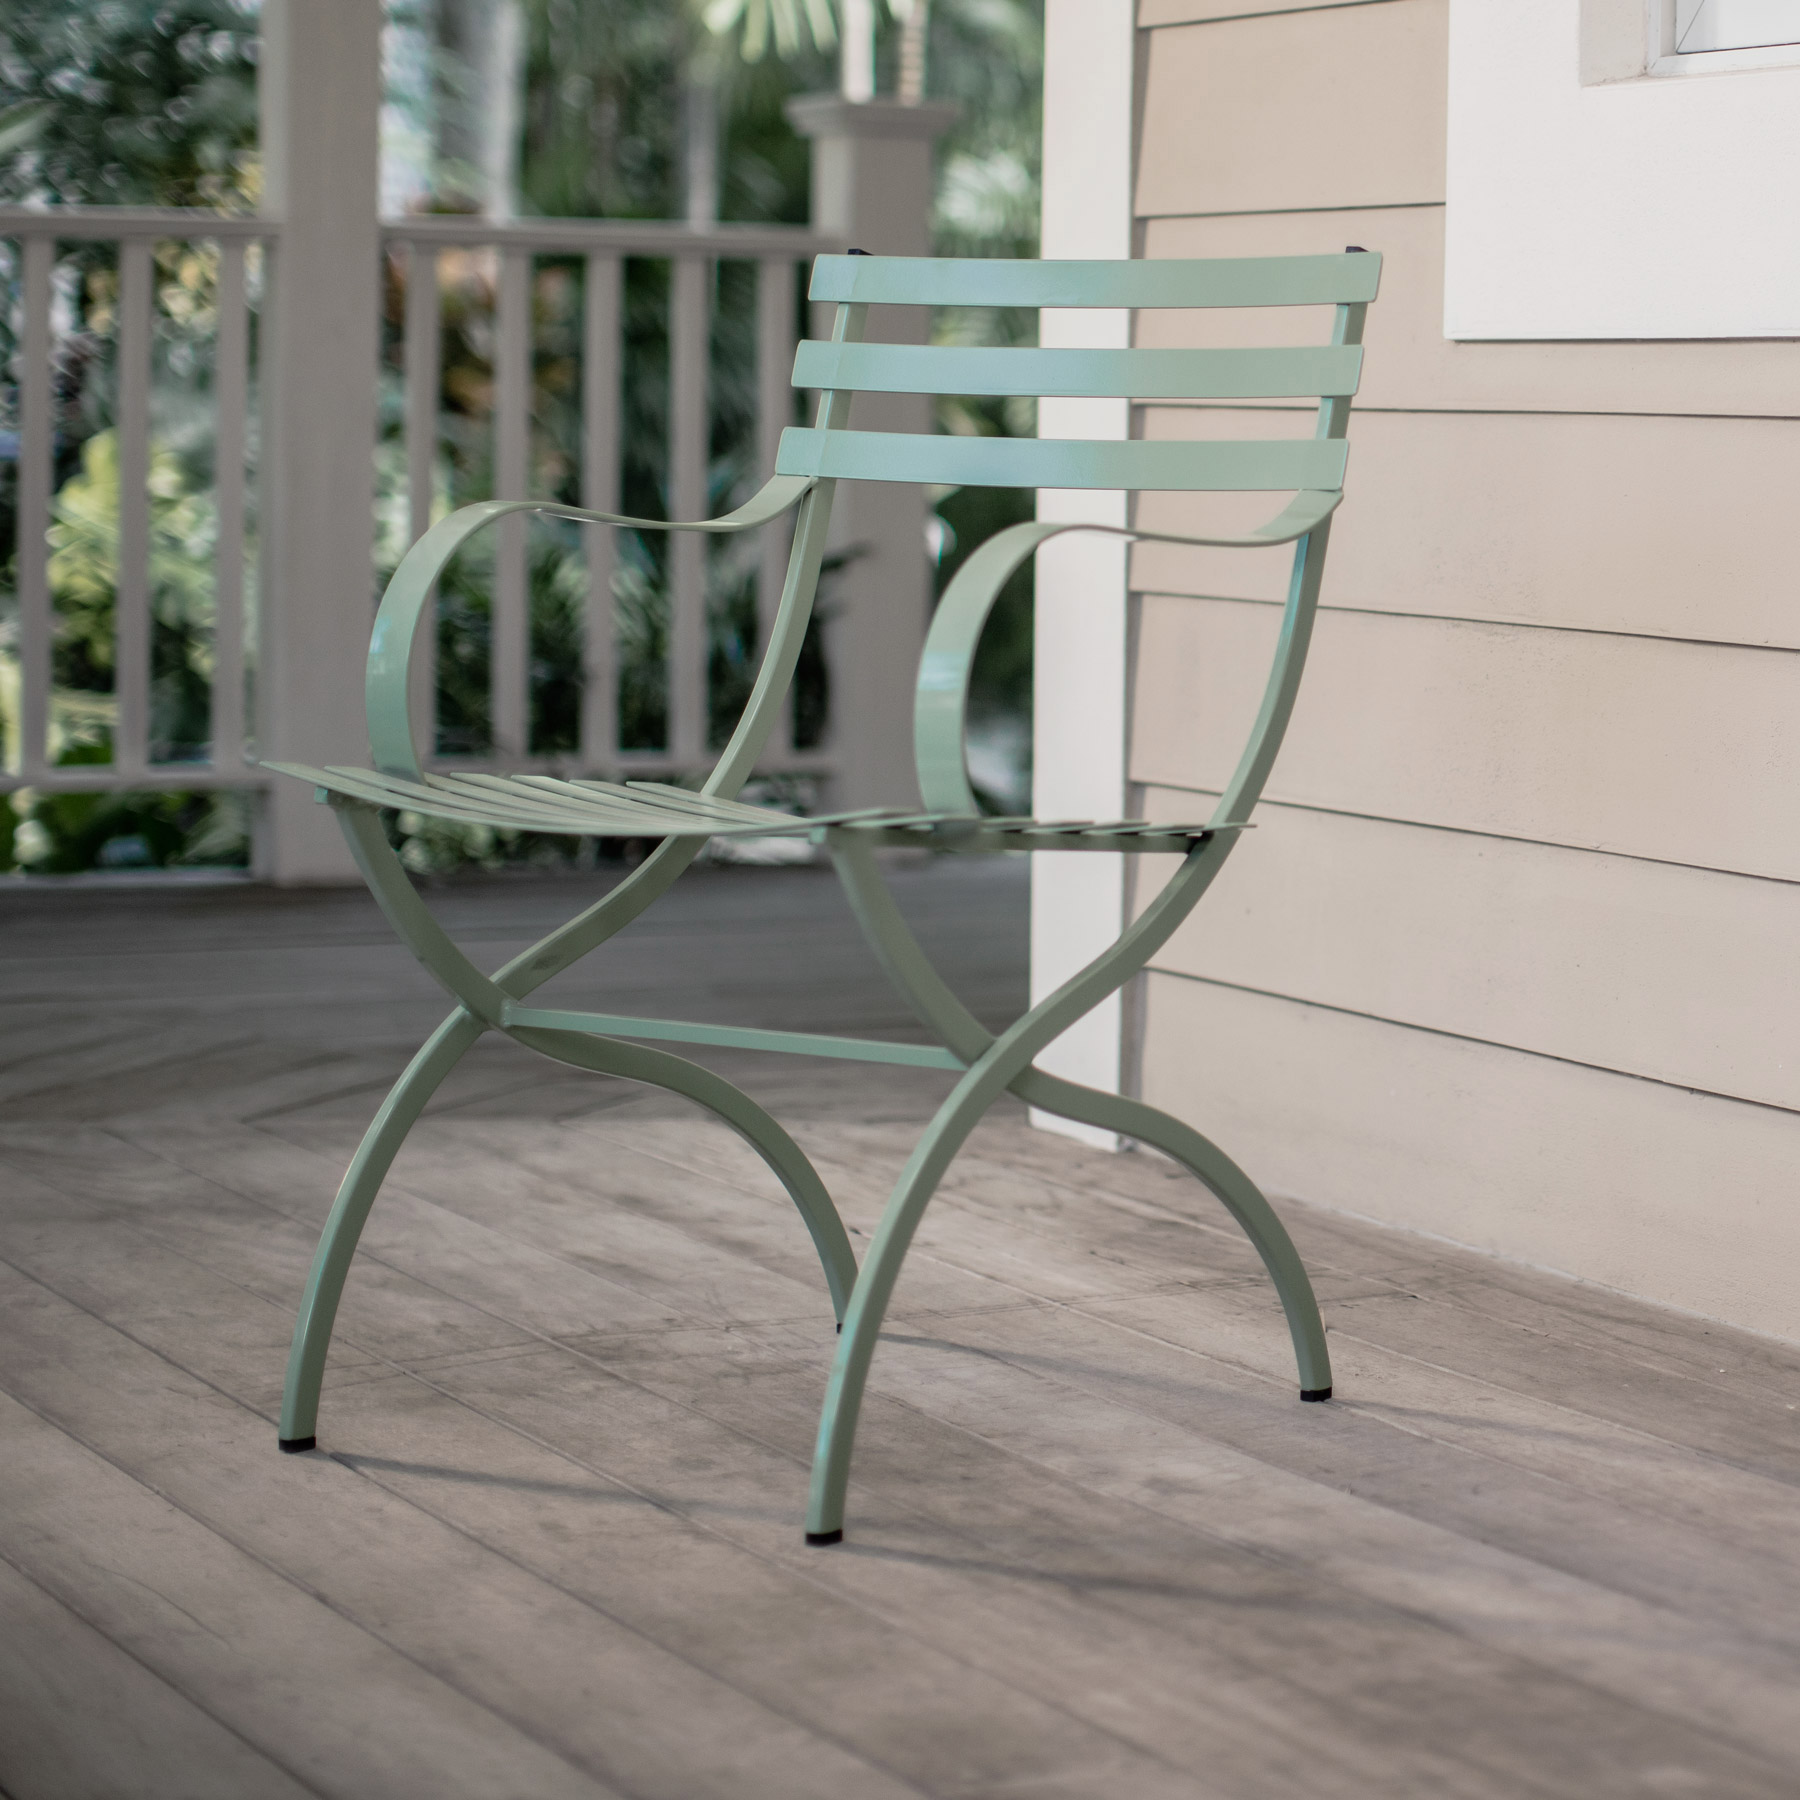 stori modern Journal patio arm chair